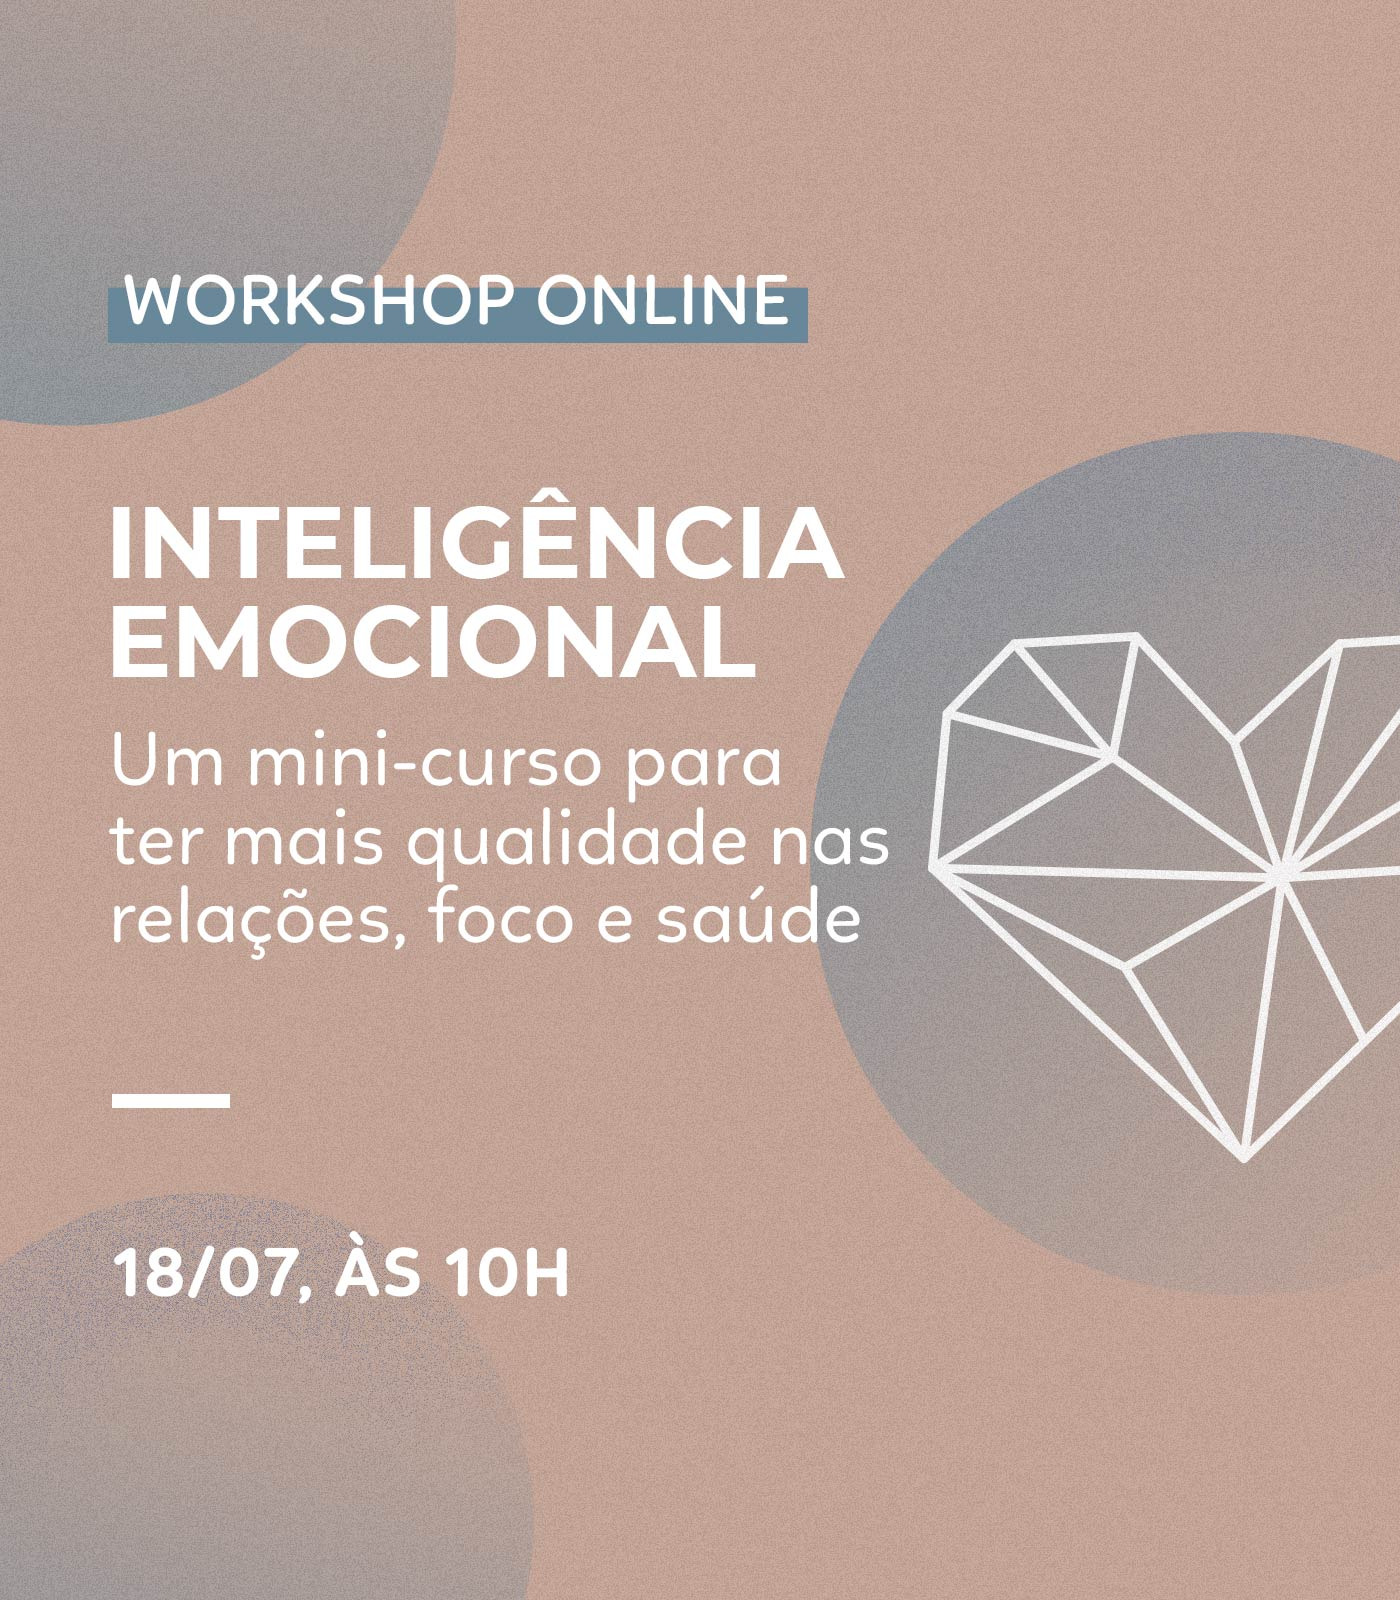 WORKSHOP: Inteligência emocional